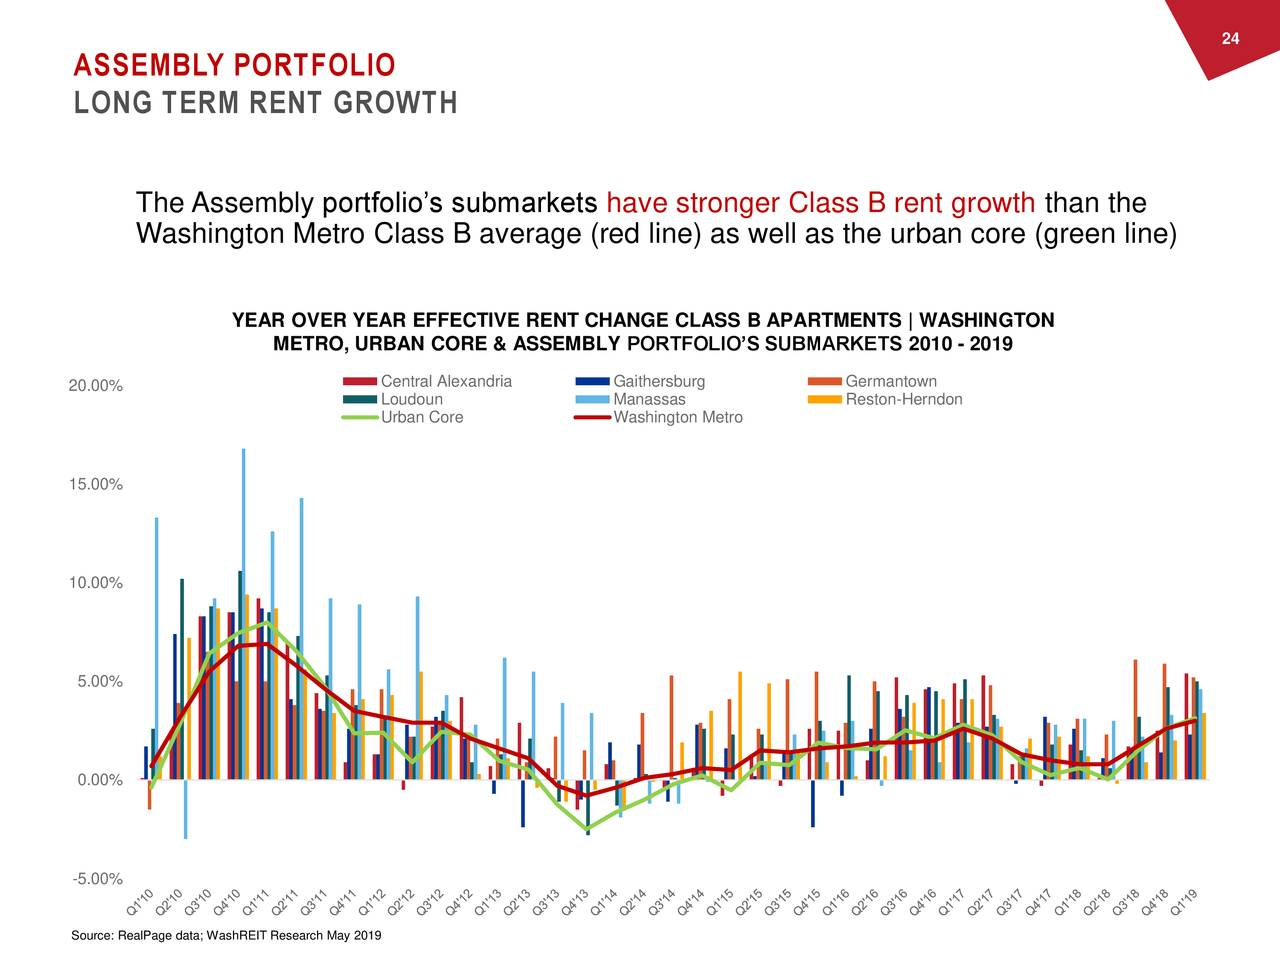 ASSEMBLY PORTFOLIO LONG TERM RENT GROWTH The Assembly portfolio's submarkets have stronger Class B rent growth than the Washington Metro Class B average (red line) as well as the urban core (green line) YEAR OVER YEAR EFFECTIVE RENT CHANGE CLASS B APARTMENTS | WASHINGTON METRO, URBAN CORE & ASSEMBLY PORTFOLIO'S SUBMARKETS 2010 - 2019 20.00% Central Alexandria Gaithersburg Germantown Loudoun Manassas Reston-Herndon Urban Core Washington Metro 15.00% 10.00% 5.00% 0.00% -5.00% Source: RealPage data; WashREIT Research May 2019